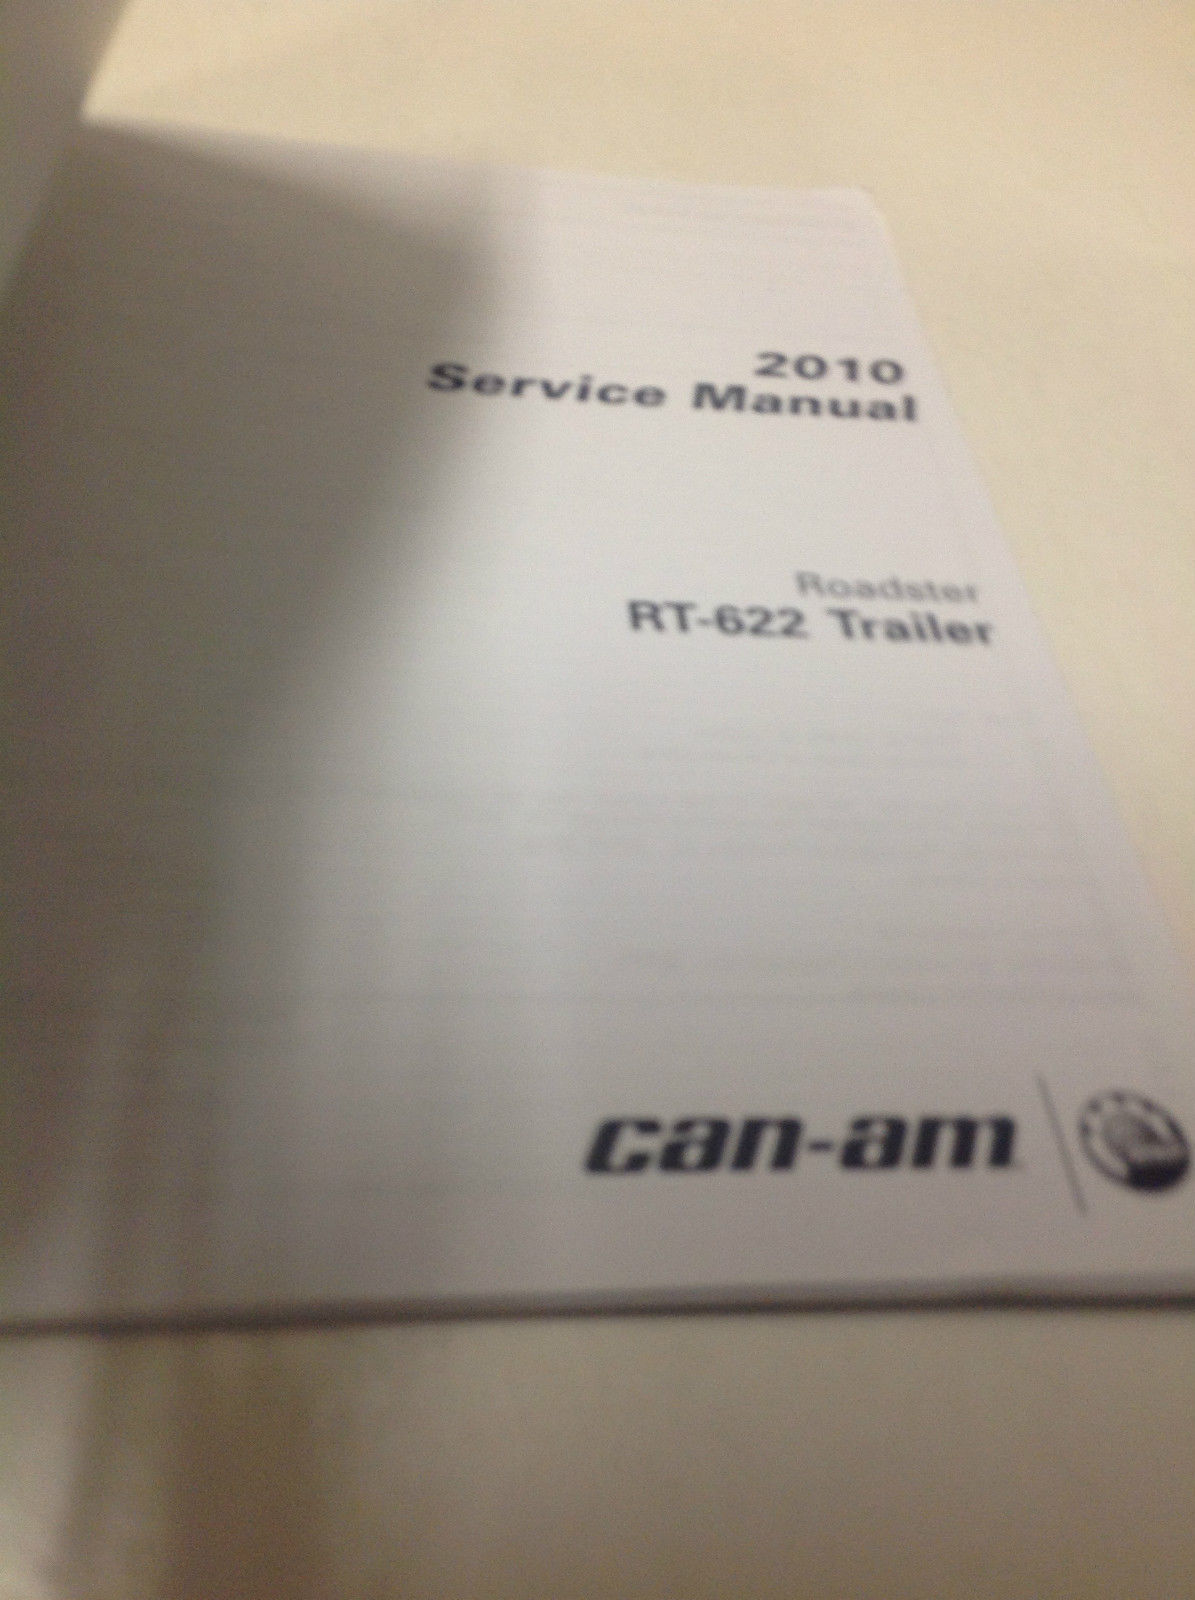 Can am spyder rt shop manual array 2010 can am roadster rt 622 trailer repair and 40 similar items rh bonanza fandeluxe Choice Image